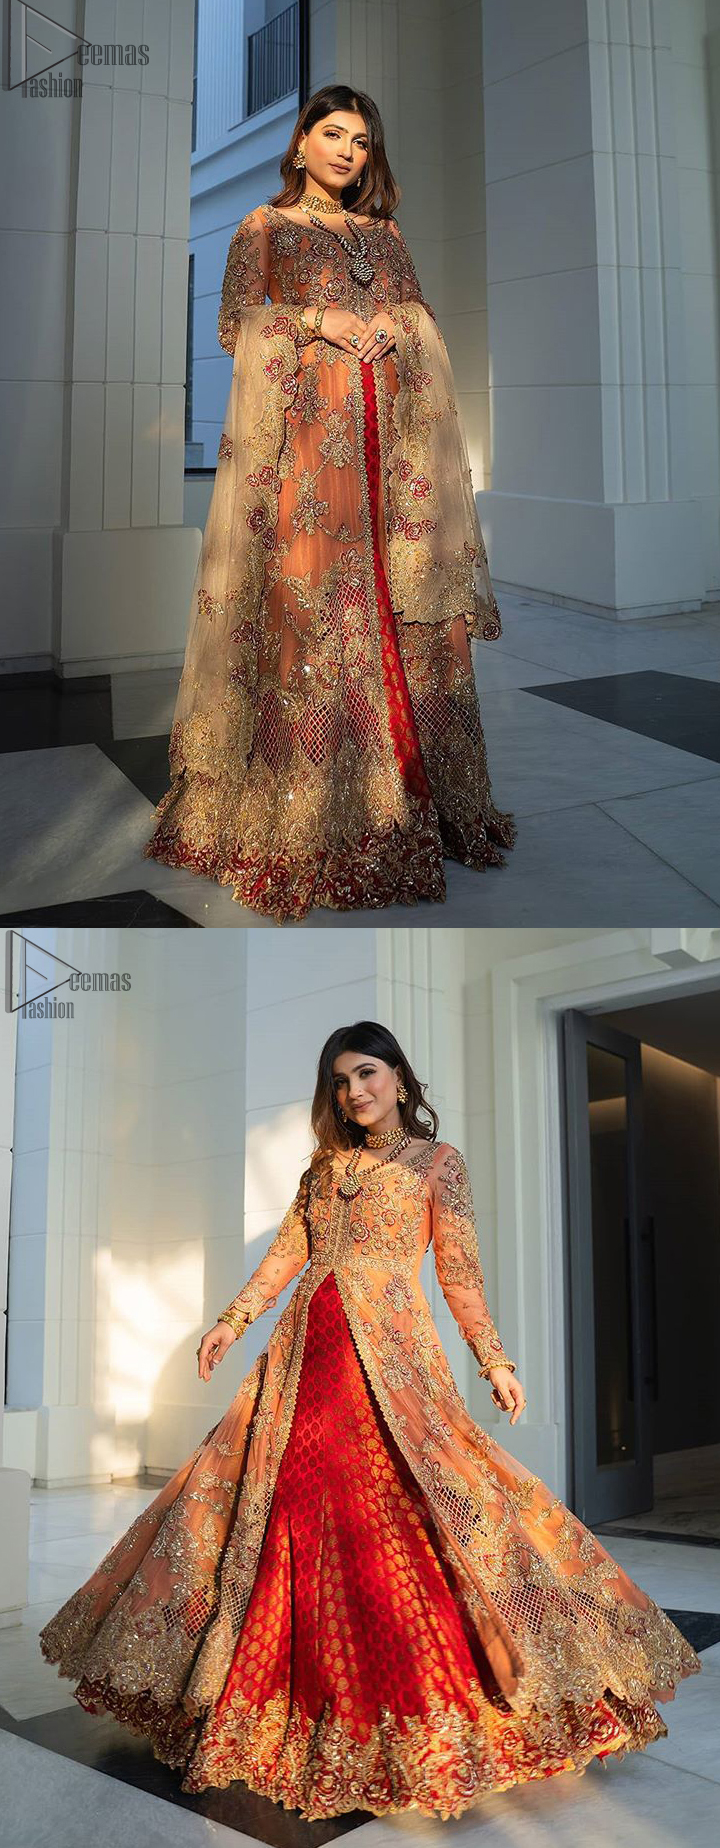 """Details make perfection and perfection is not a detail""""-DaVinci. This beautiful quote embodies what the DeemasFashion tries to achieve in its every ensemble which is customised to perfection. This beautiful play of red and orange makes for a stunning. The upper layer of maxi is beautifully crafted with multiple color zardozi work and embroidered jaal. The bottom of inner are even more enhanced with golden zardozi embellishment and finished with scallops. It comprises with churidar pajama and fawn chiffon dupatta. The embellished alluring cut work floral border gives the perfect ending to veil or dupatta."""